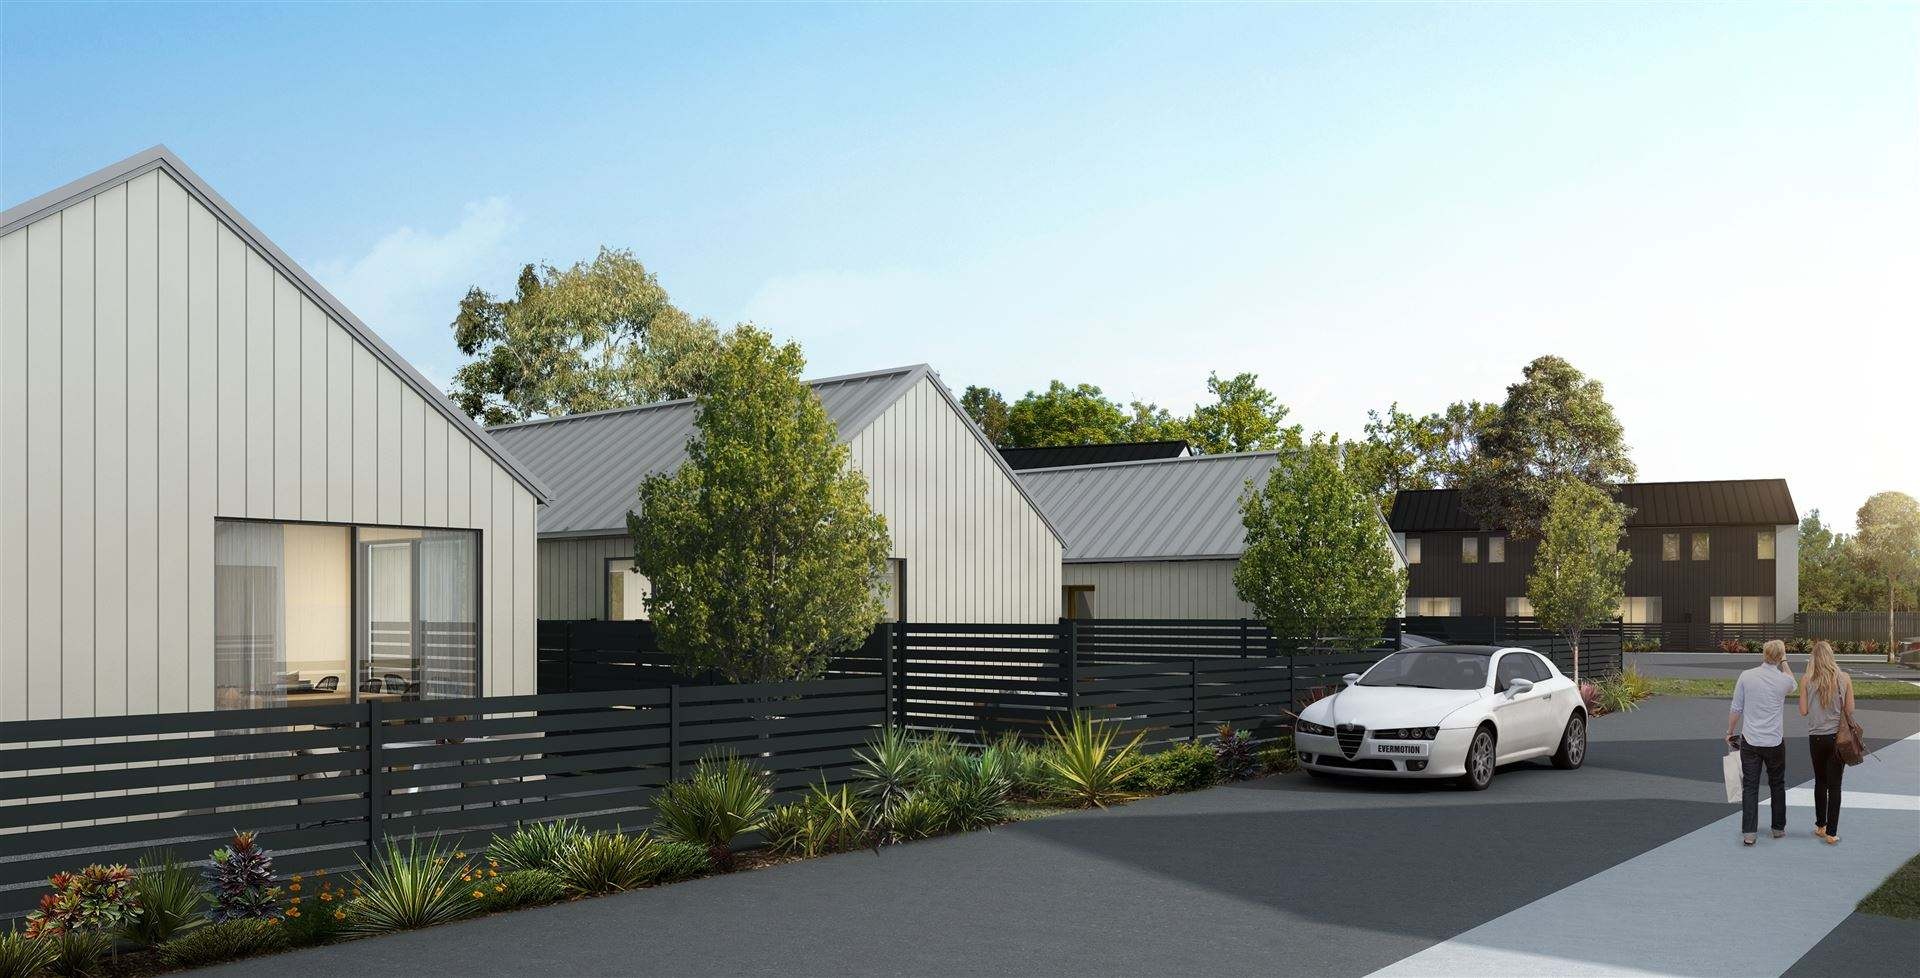 Heathcote Valley 2房 First Home Or Downsizing ?